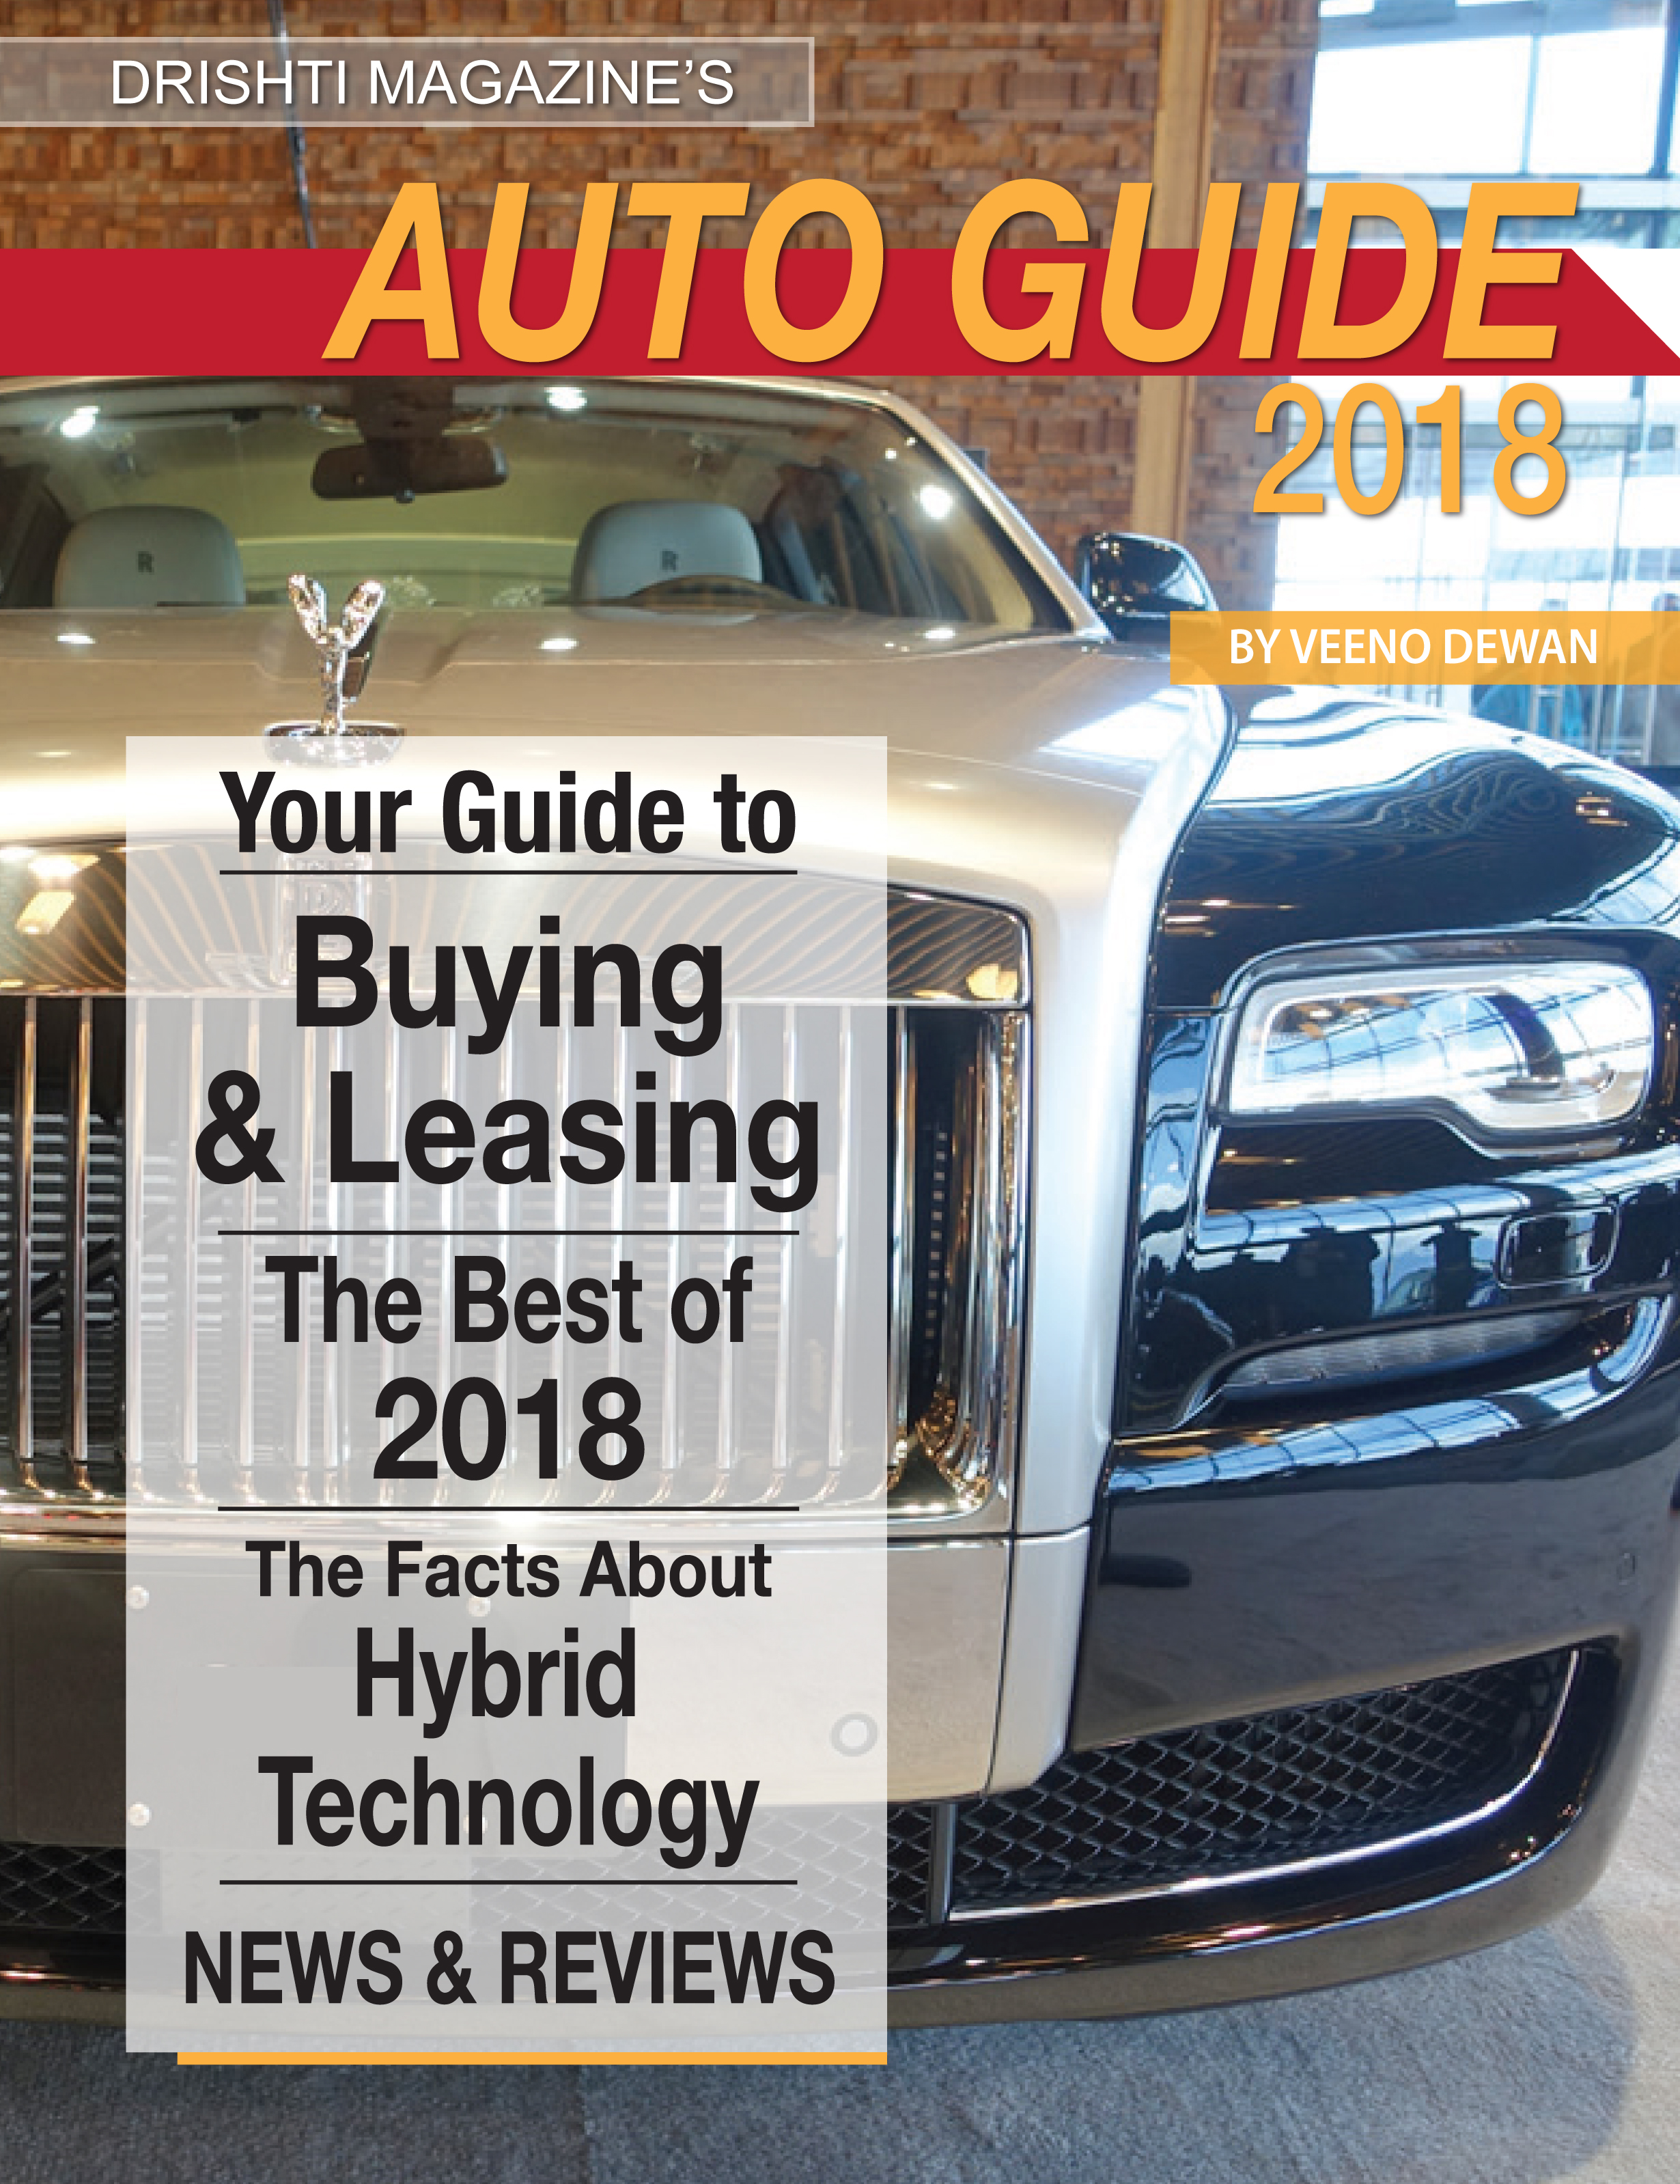 DRISHTI MAGAZINE'S AUTOMOTIVE GUIDE